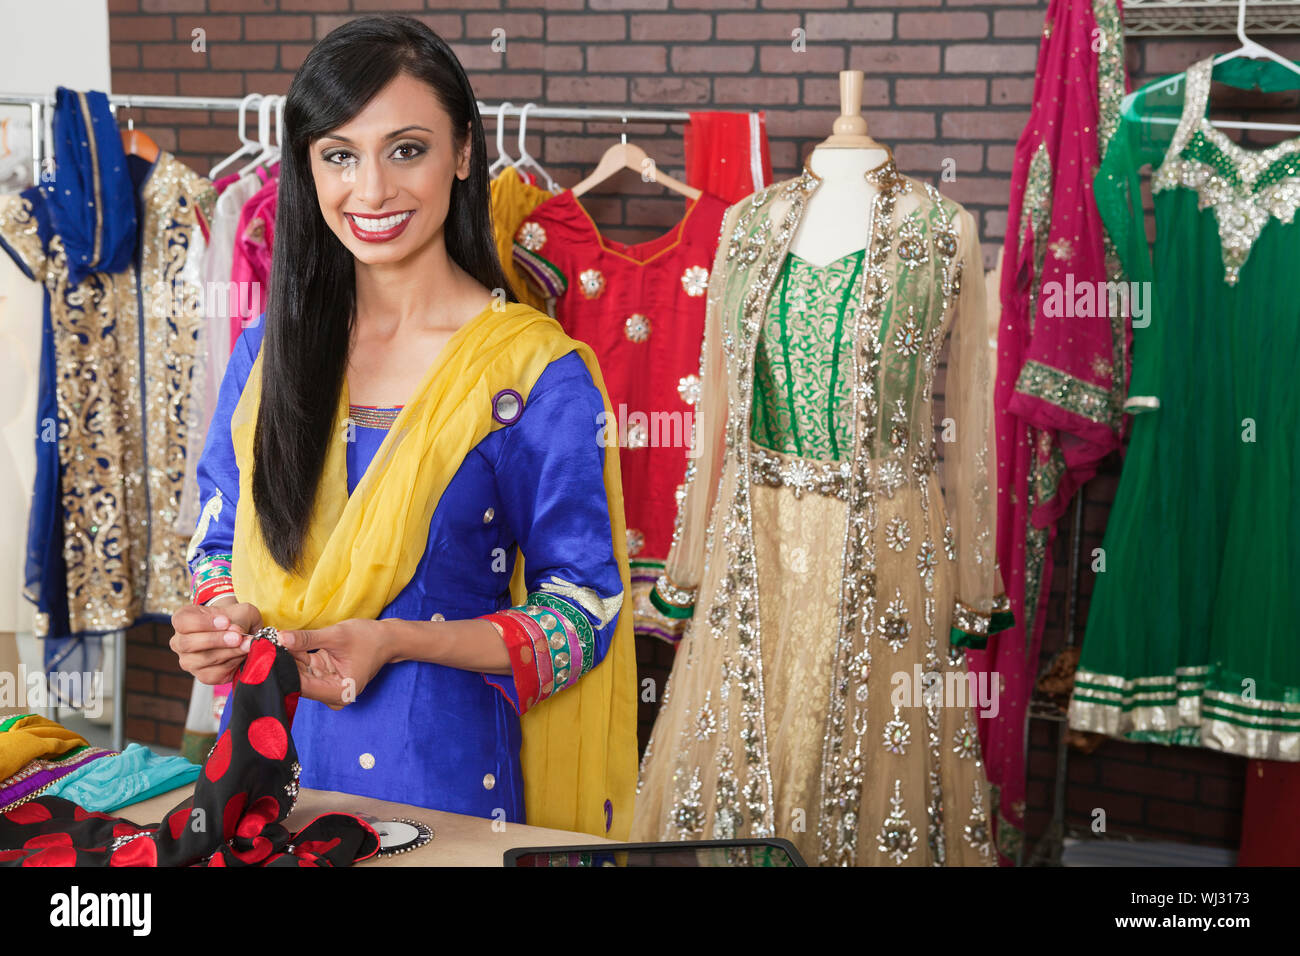 Page 2 Indian Women Portrait Fashion Designer High Resolution Stock Photography And Images Alamy